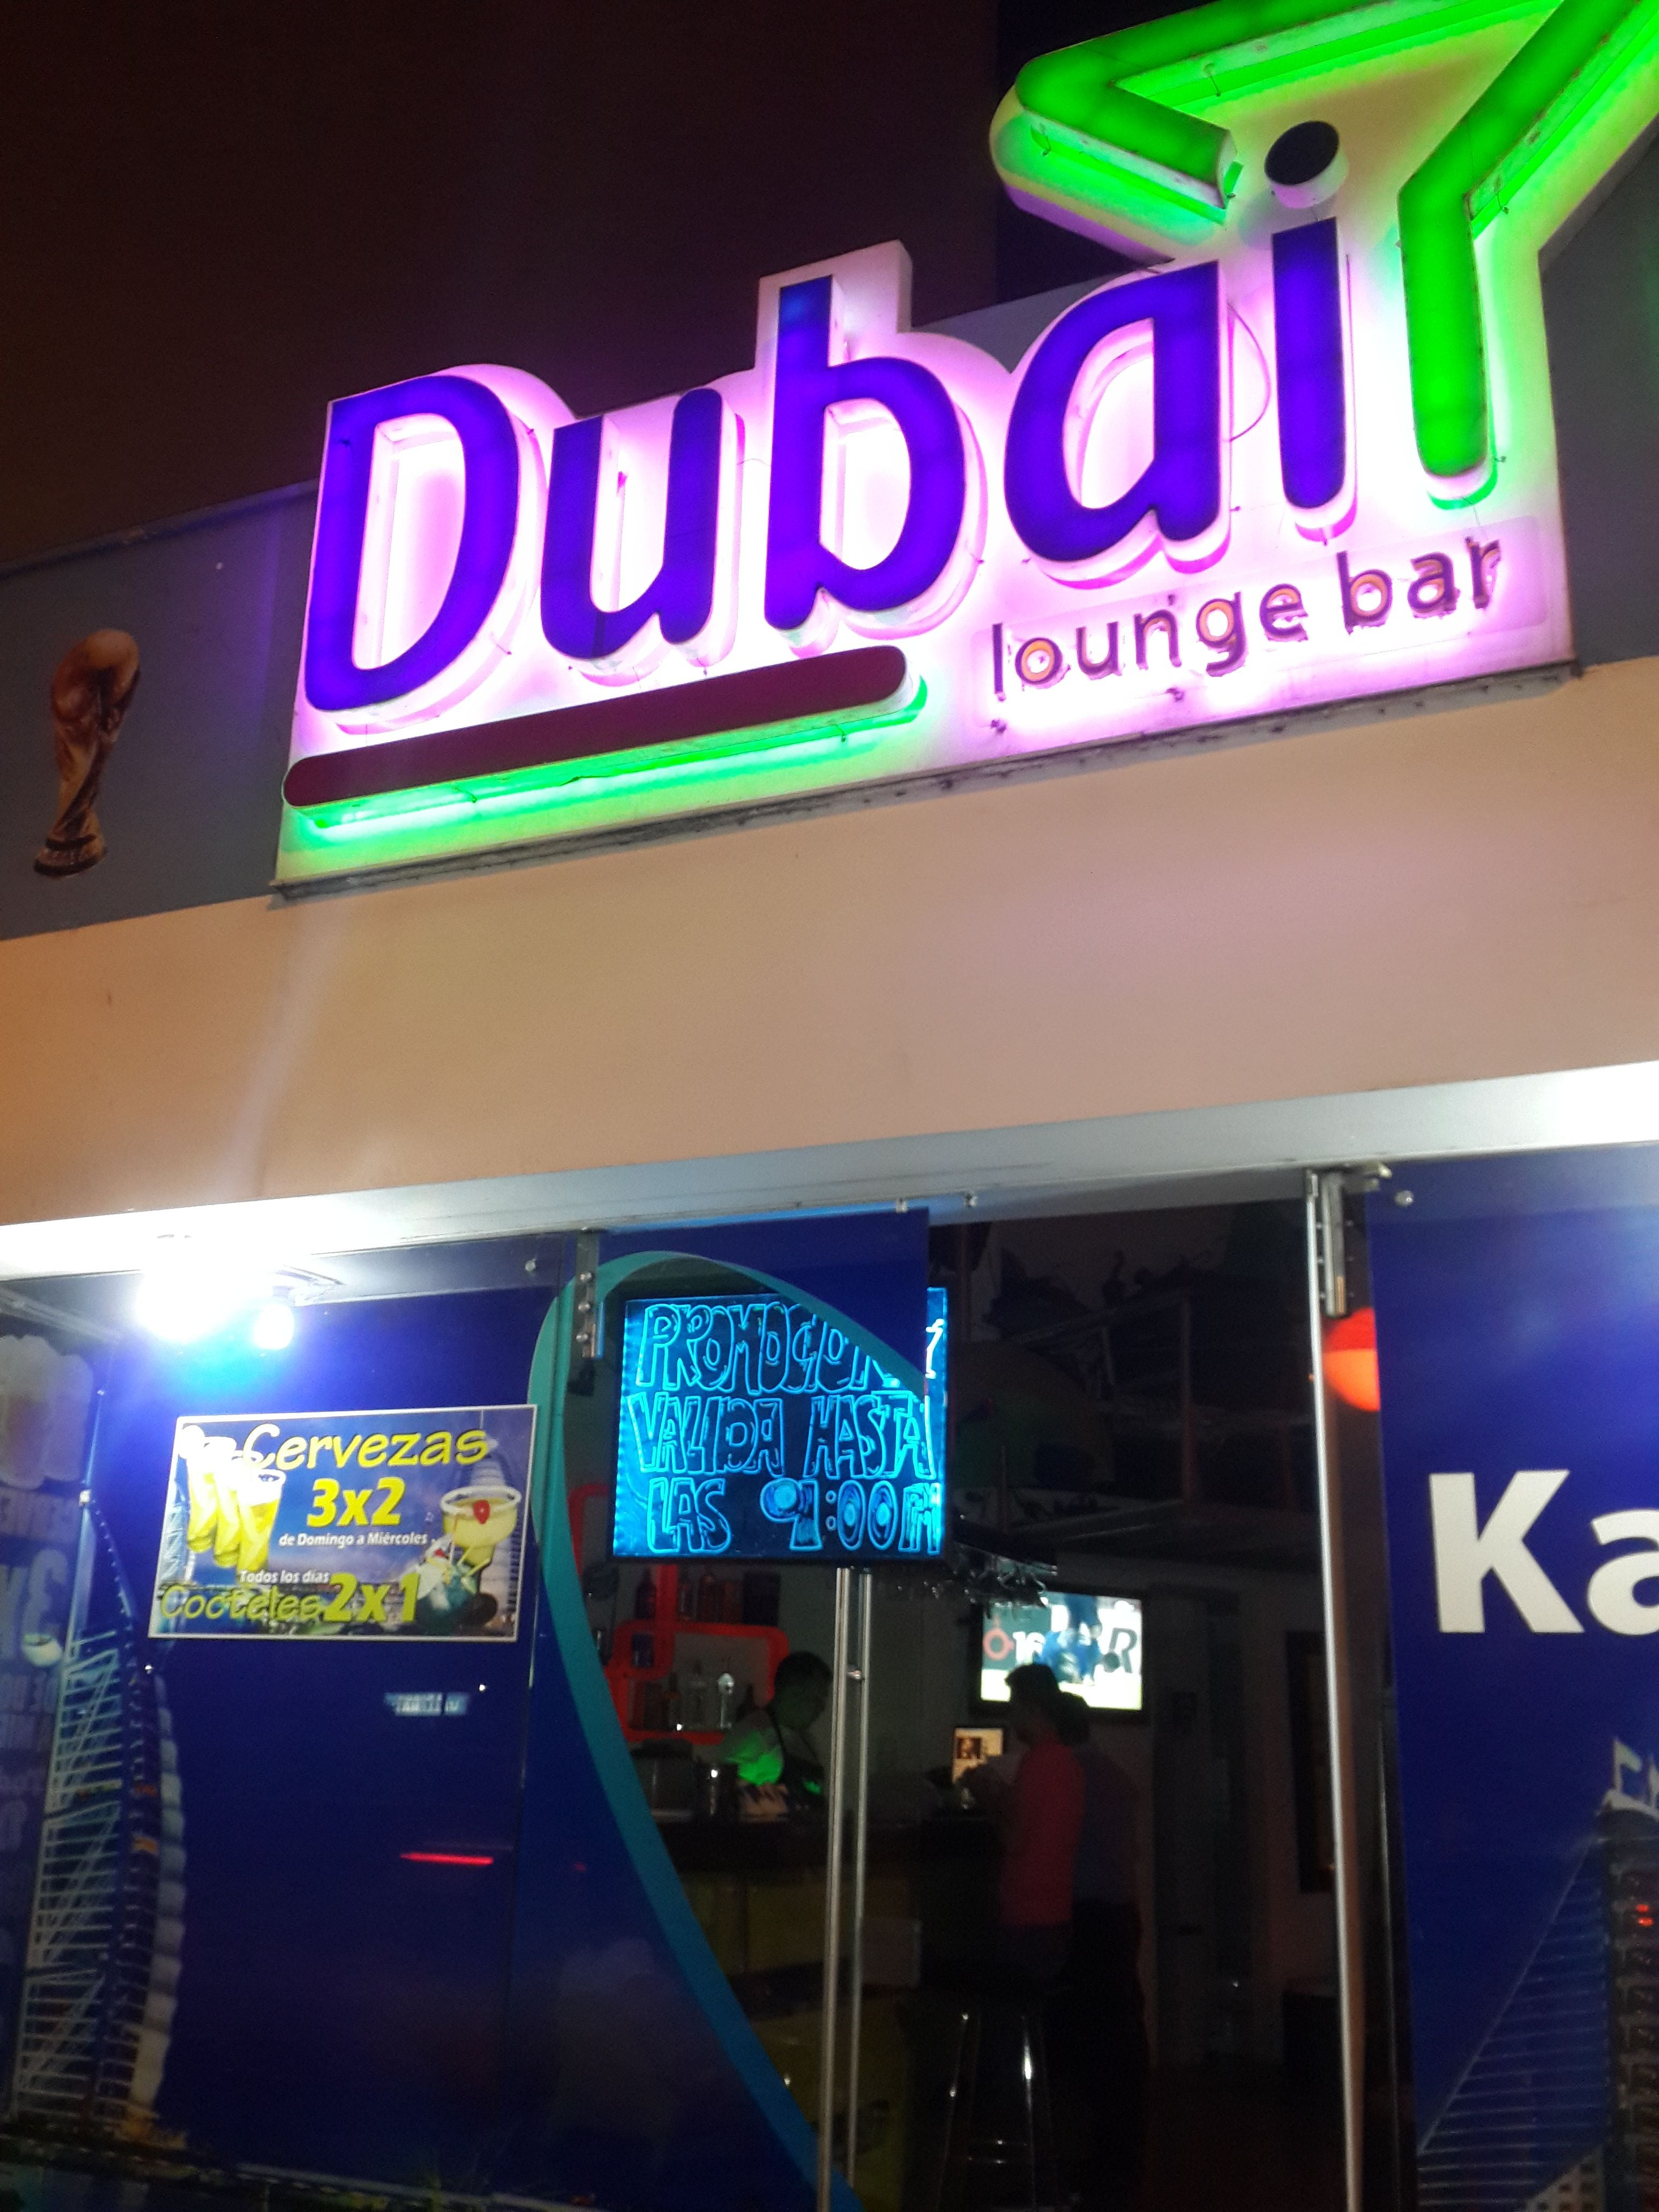 Signage in Dubái Lounge Bar